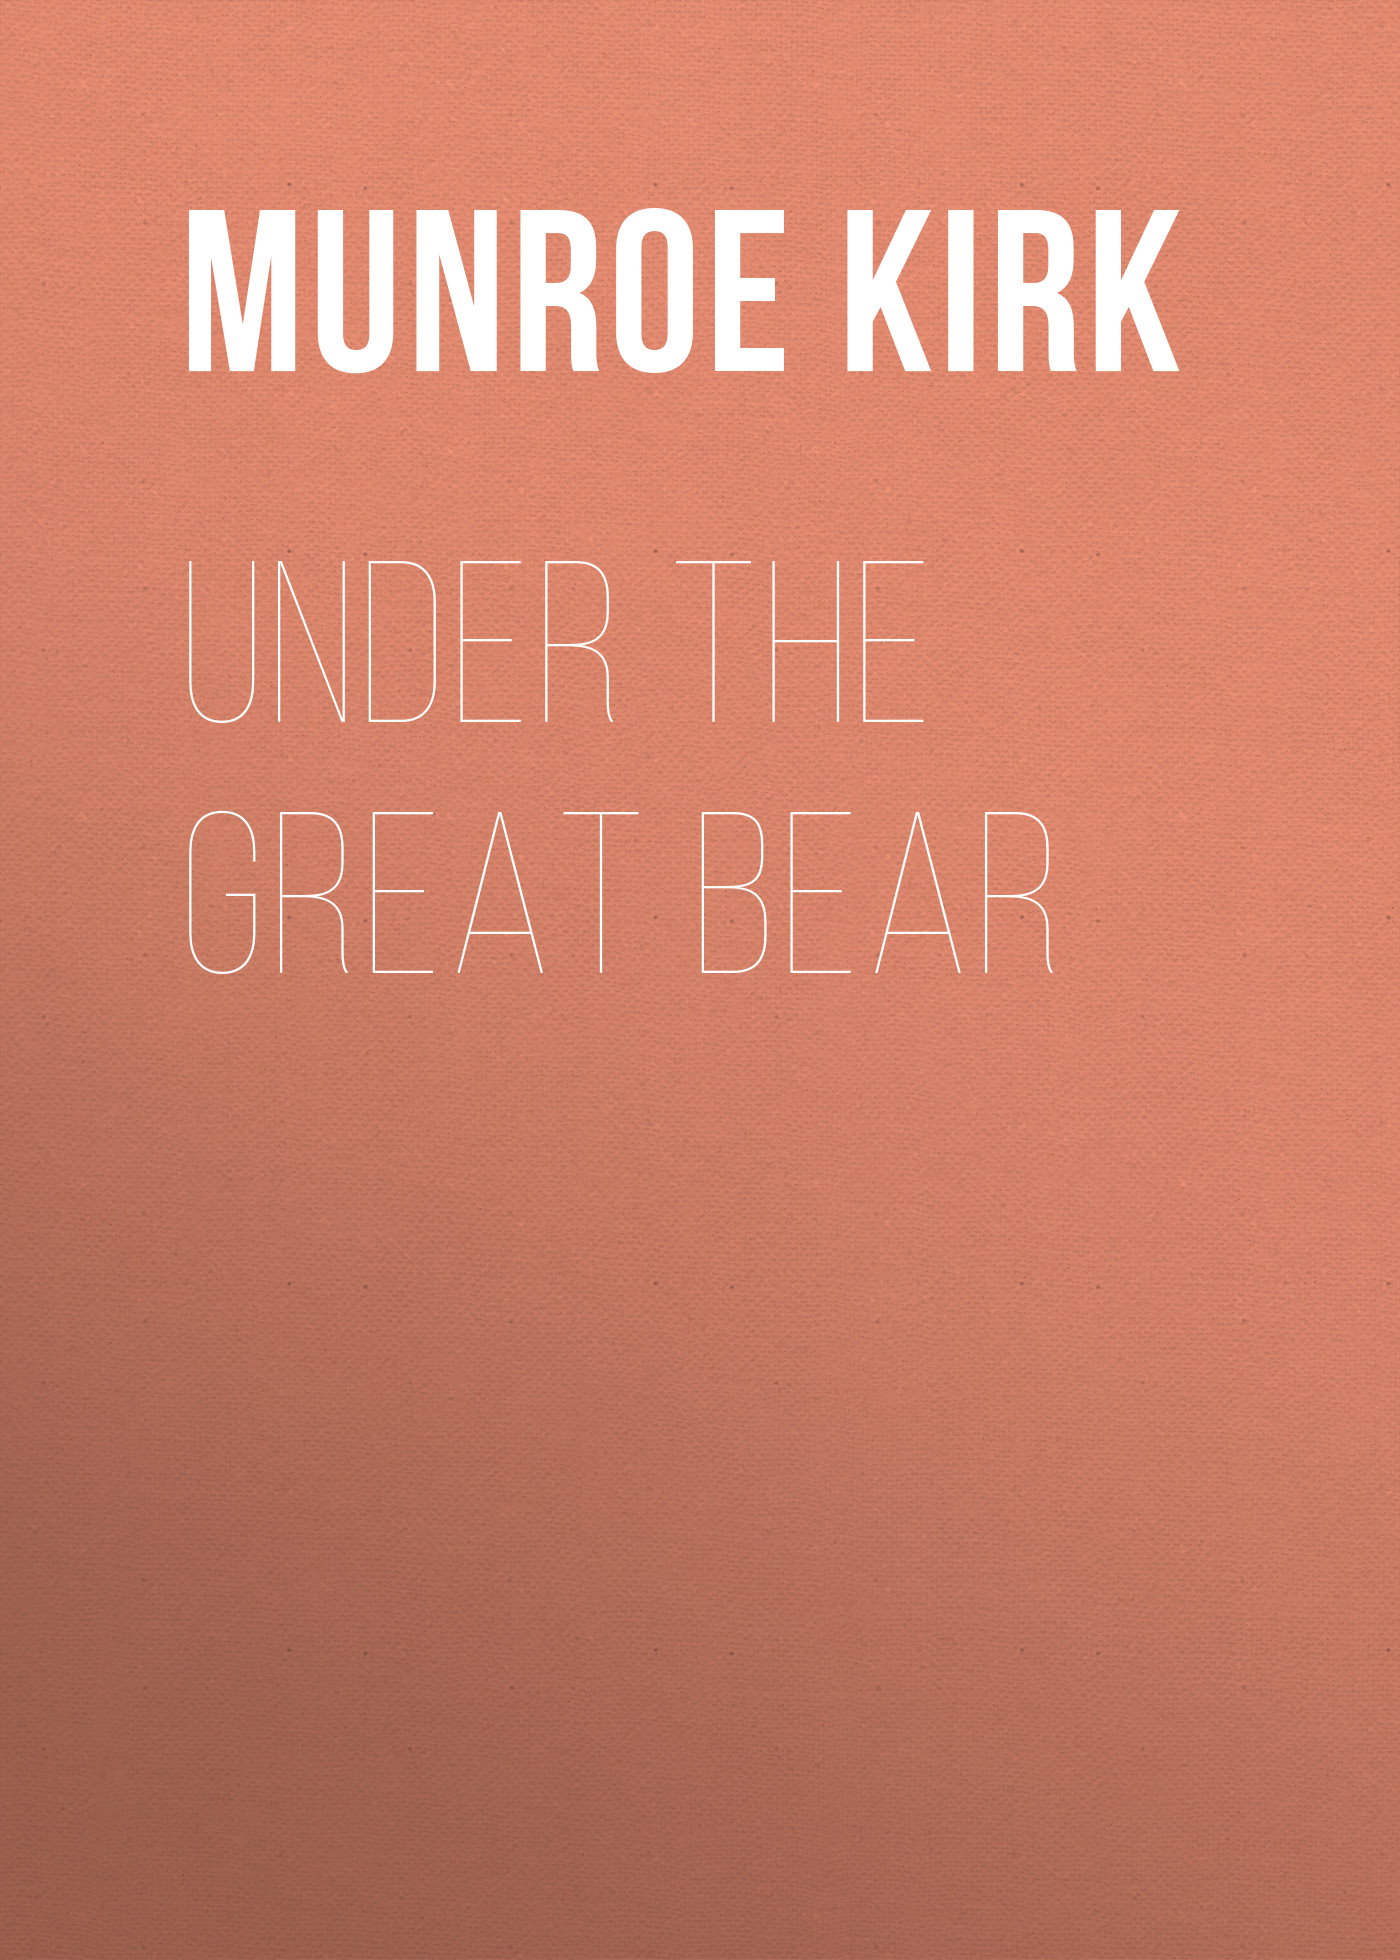 Munroe Kirk Under the Great Bear аккумулятор для телефона ibatt bl272 для lenovo k33a42 vibe k6 power